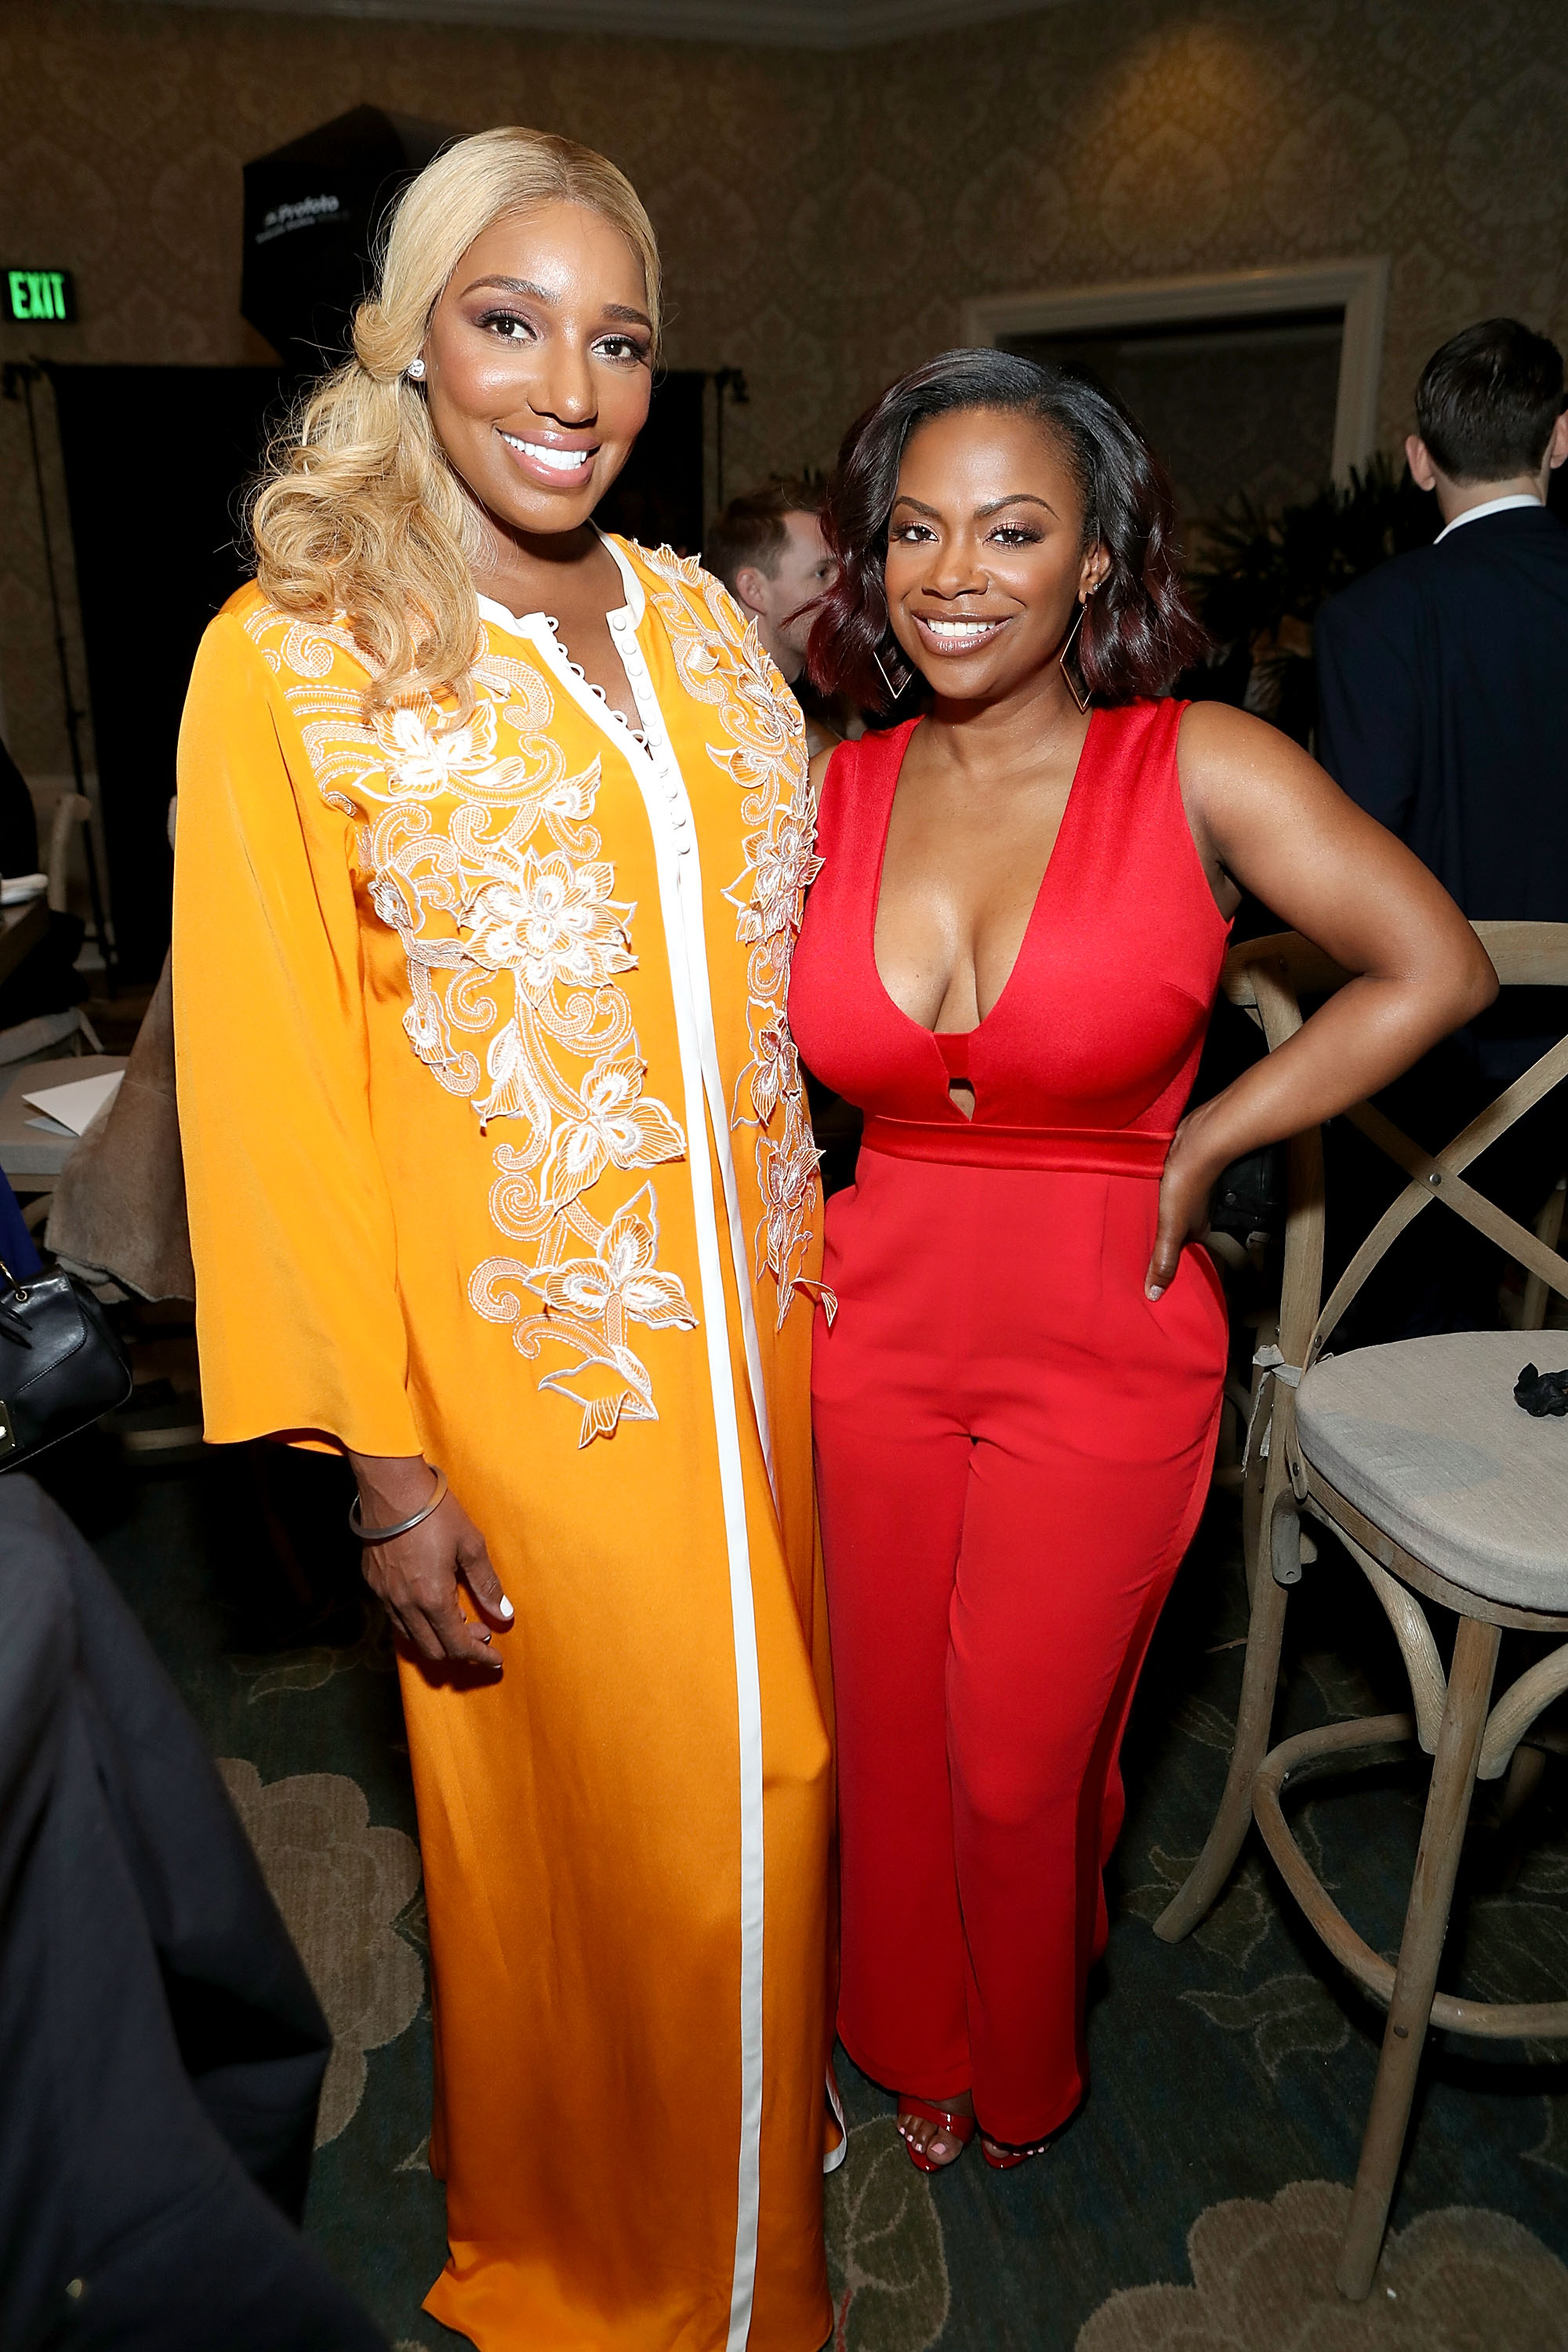 NeNe Leaks (L) and Kandi Burruss     (Photo by Randy Shropshire/Getty Images for Mercedes-Benz USA)